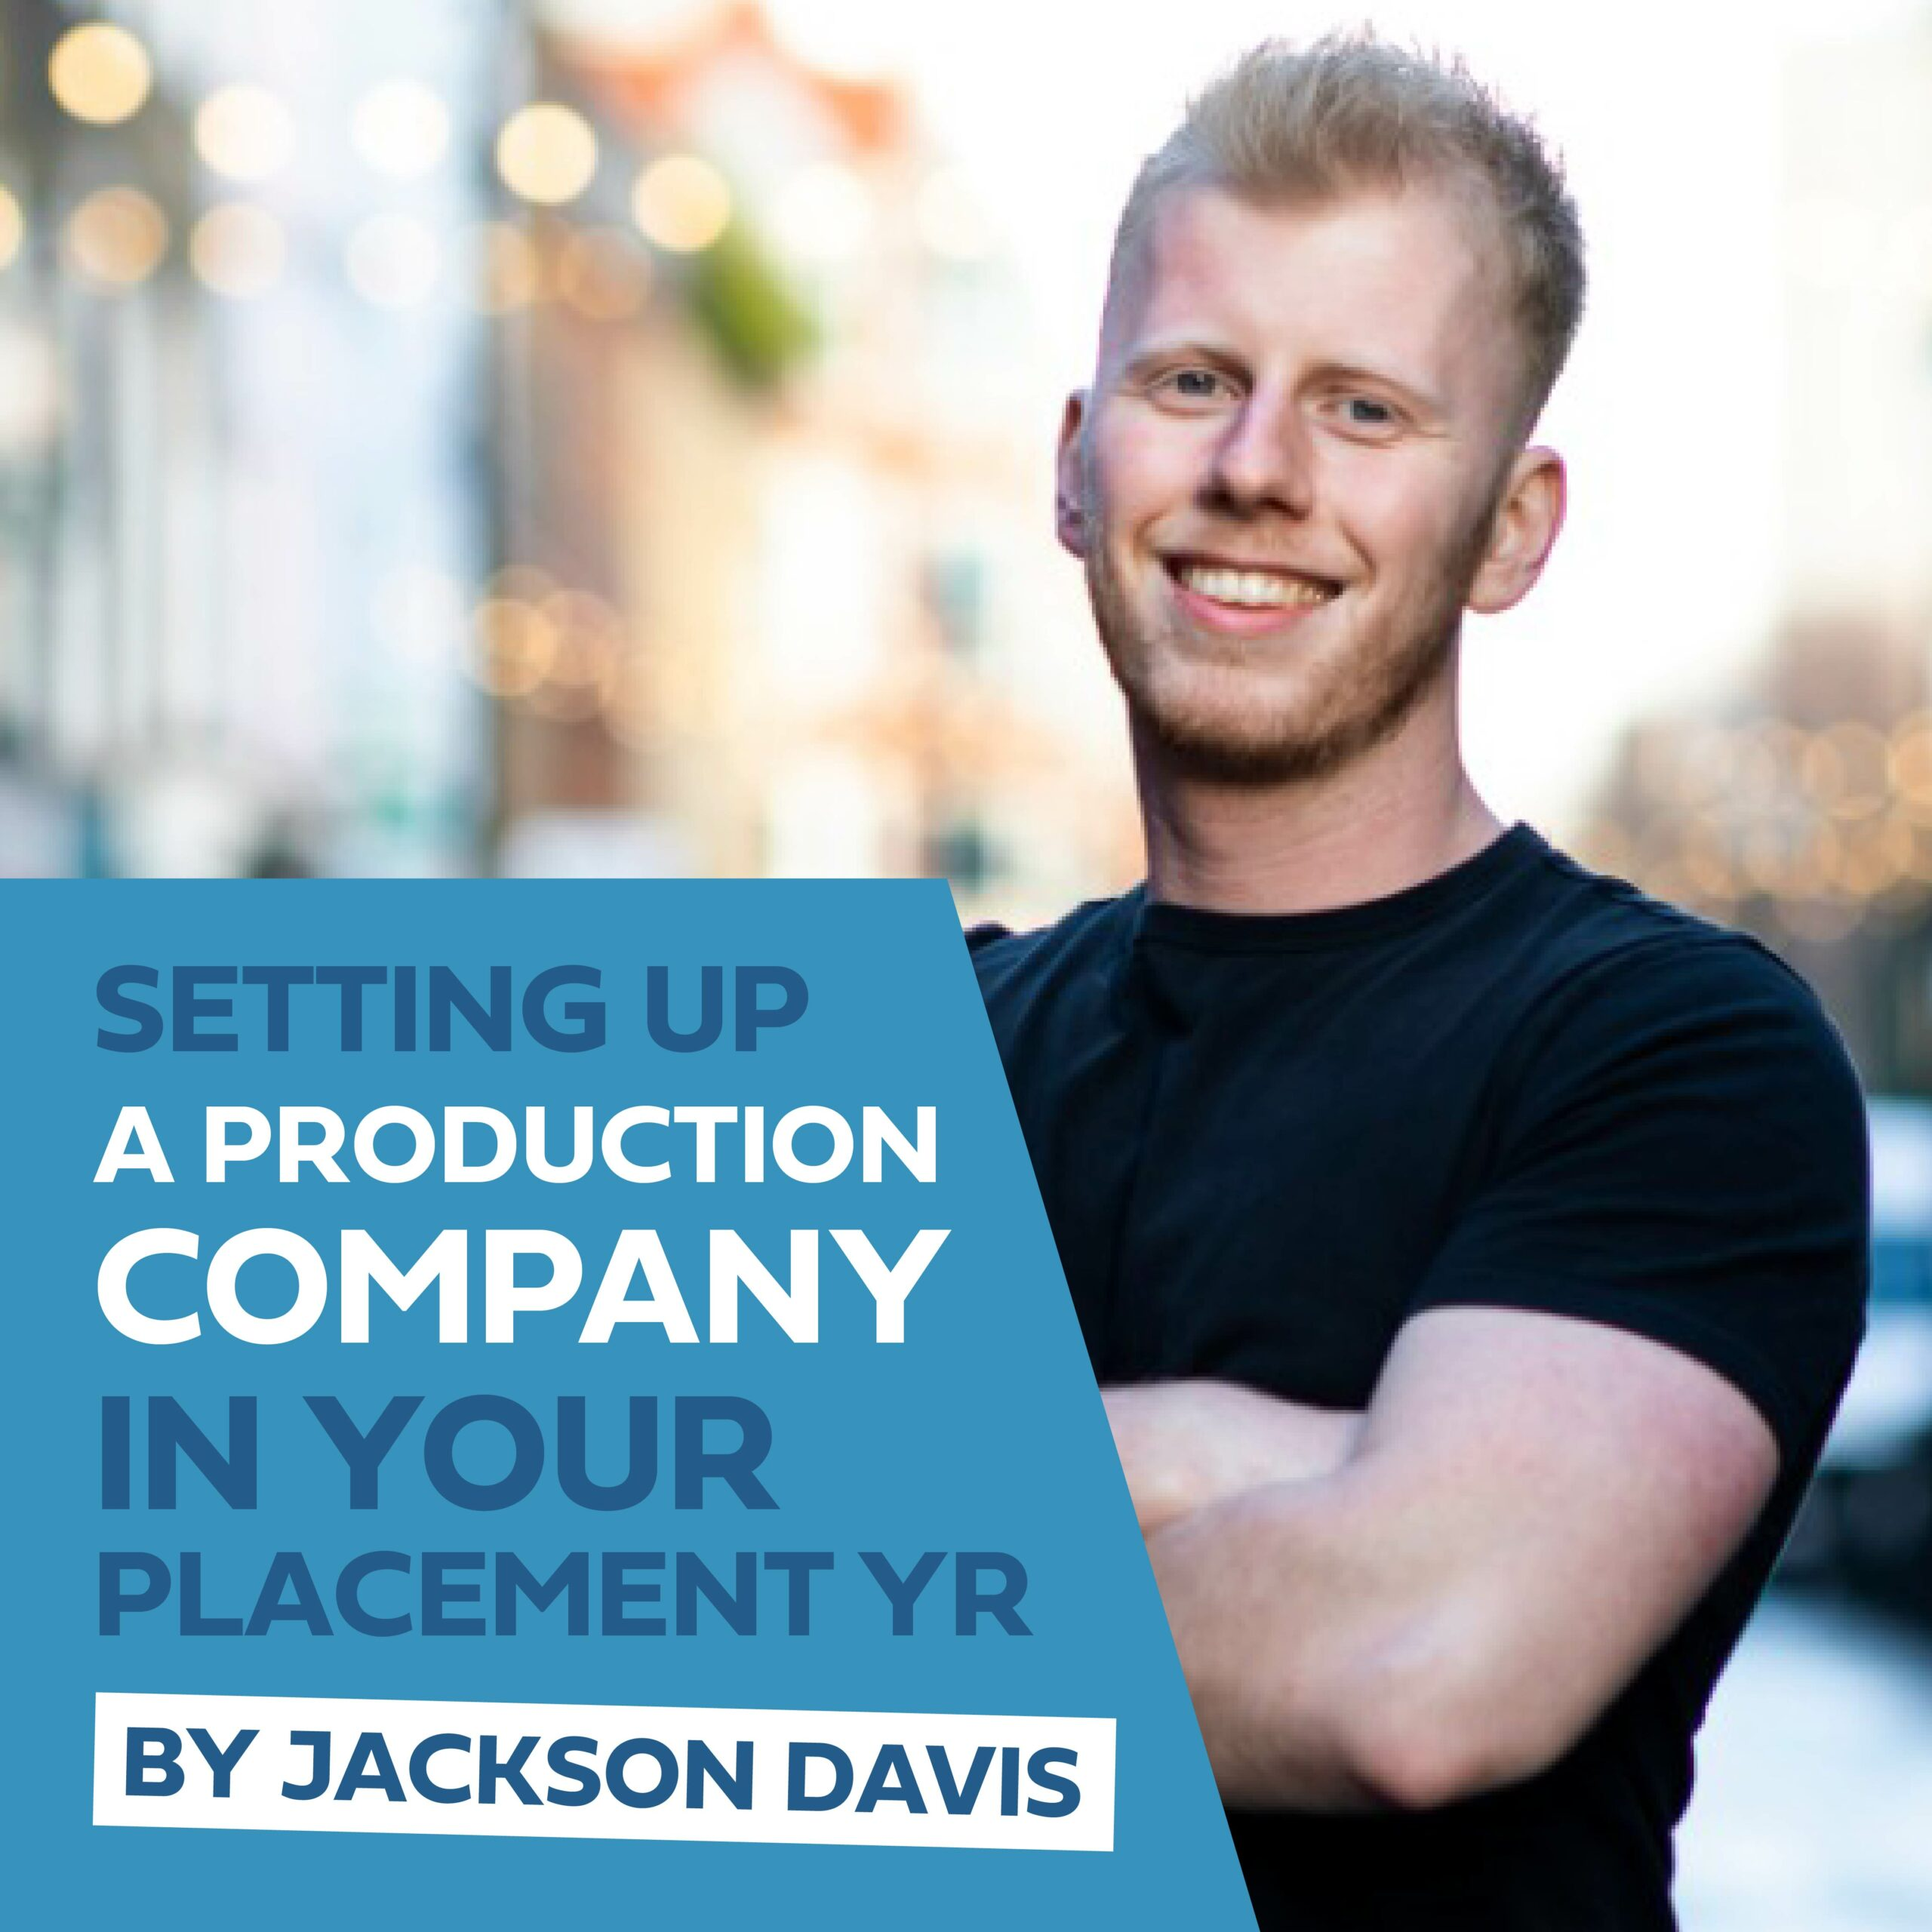 setting-up-a-production-company-in-your-third-year